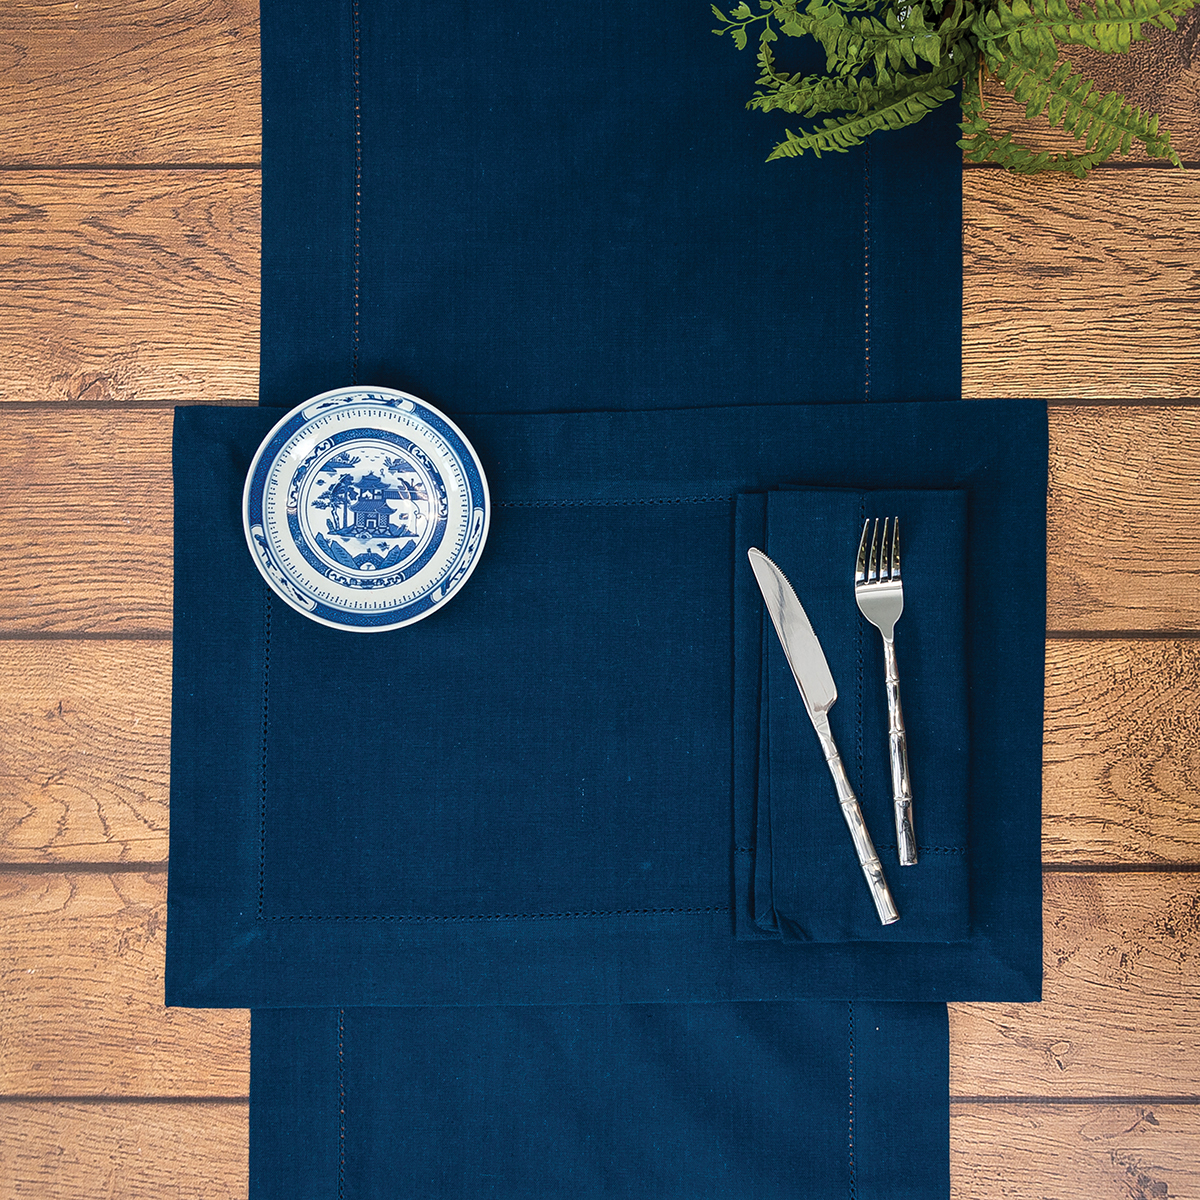 C&F Home_Lodge_Tabletop_Table Runners.jpg